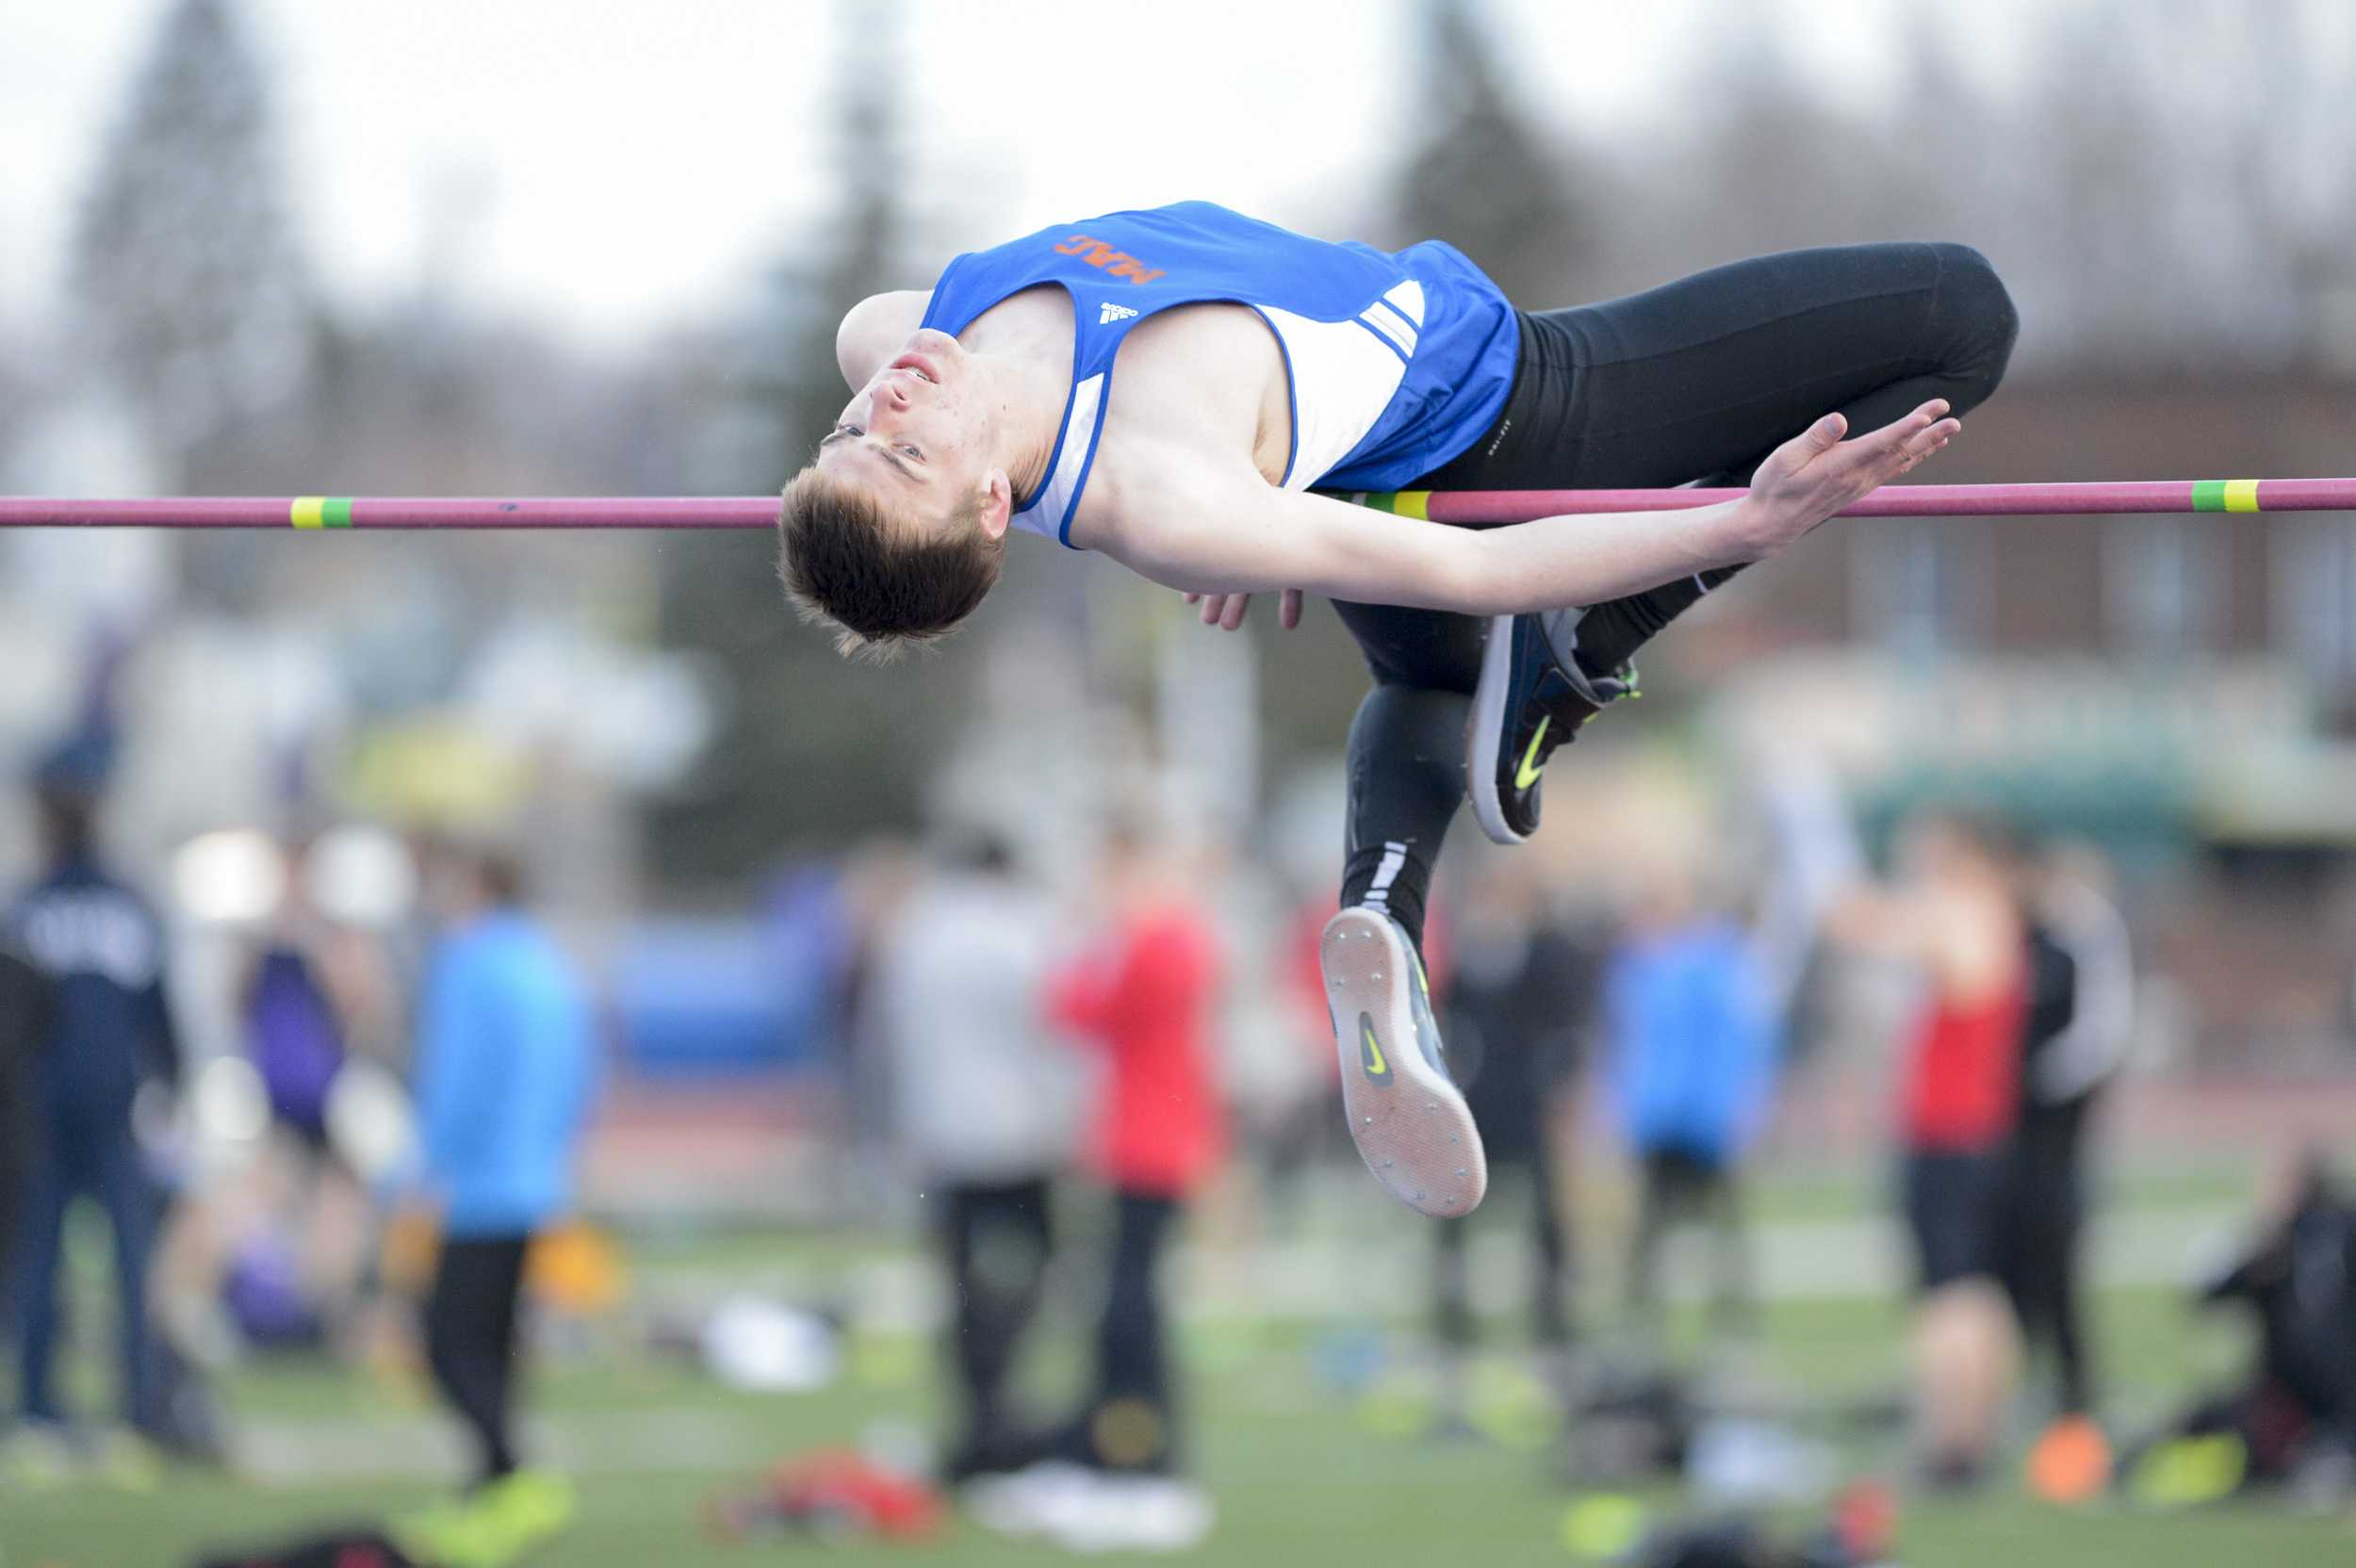 Logan Hovie '16 jumps at the Twilight Meet last April at Macalester. Hovie qualified for the Division III National Track and Field Championship, where he finished 19th in the high jump. Photos courtesy of Christopher Mitchell.